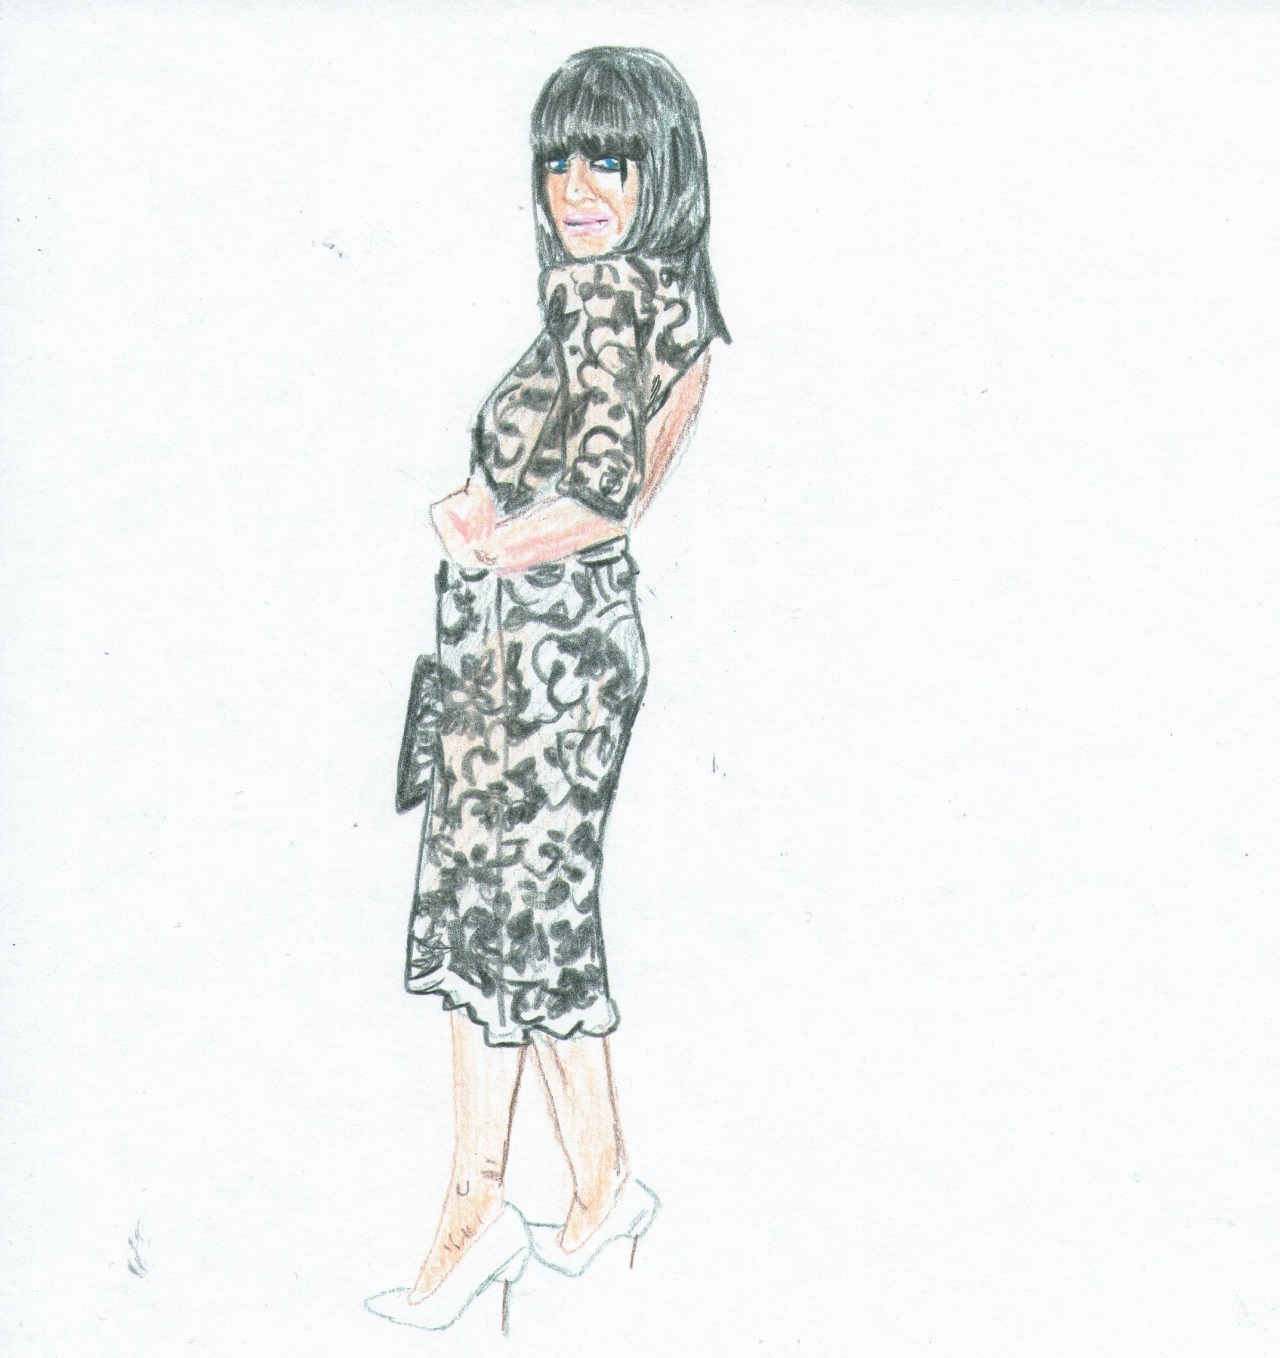 Claudia Winkleman at the BAFTA TV Awards 2013